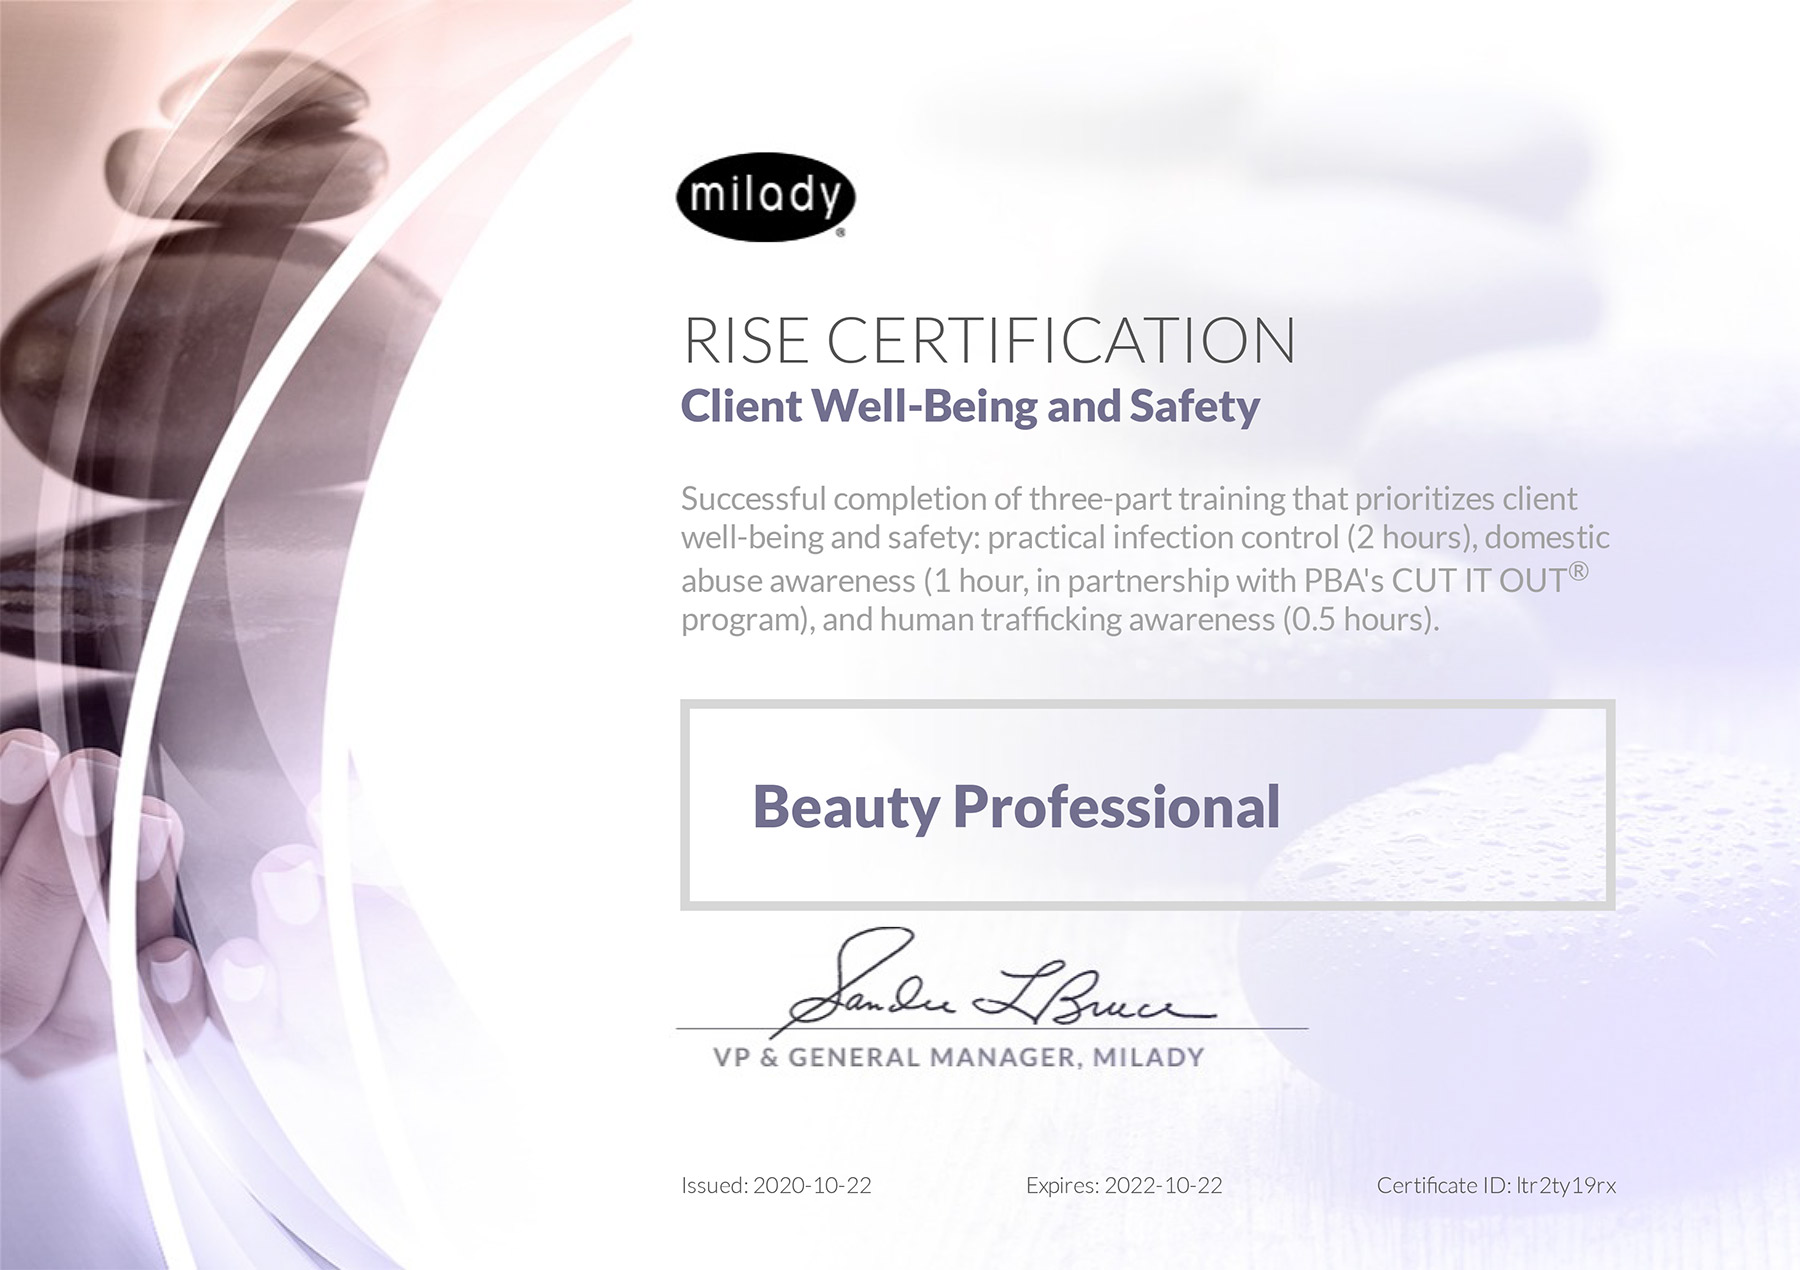 Milady Launches Certification in Client Well-Being & Safety